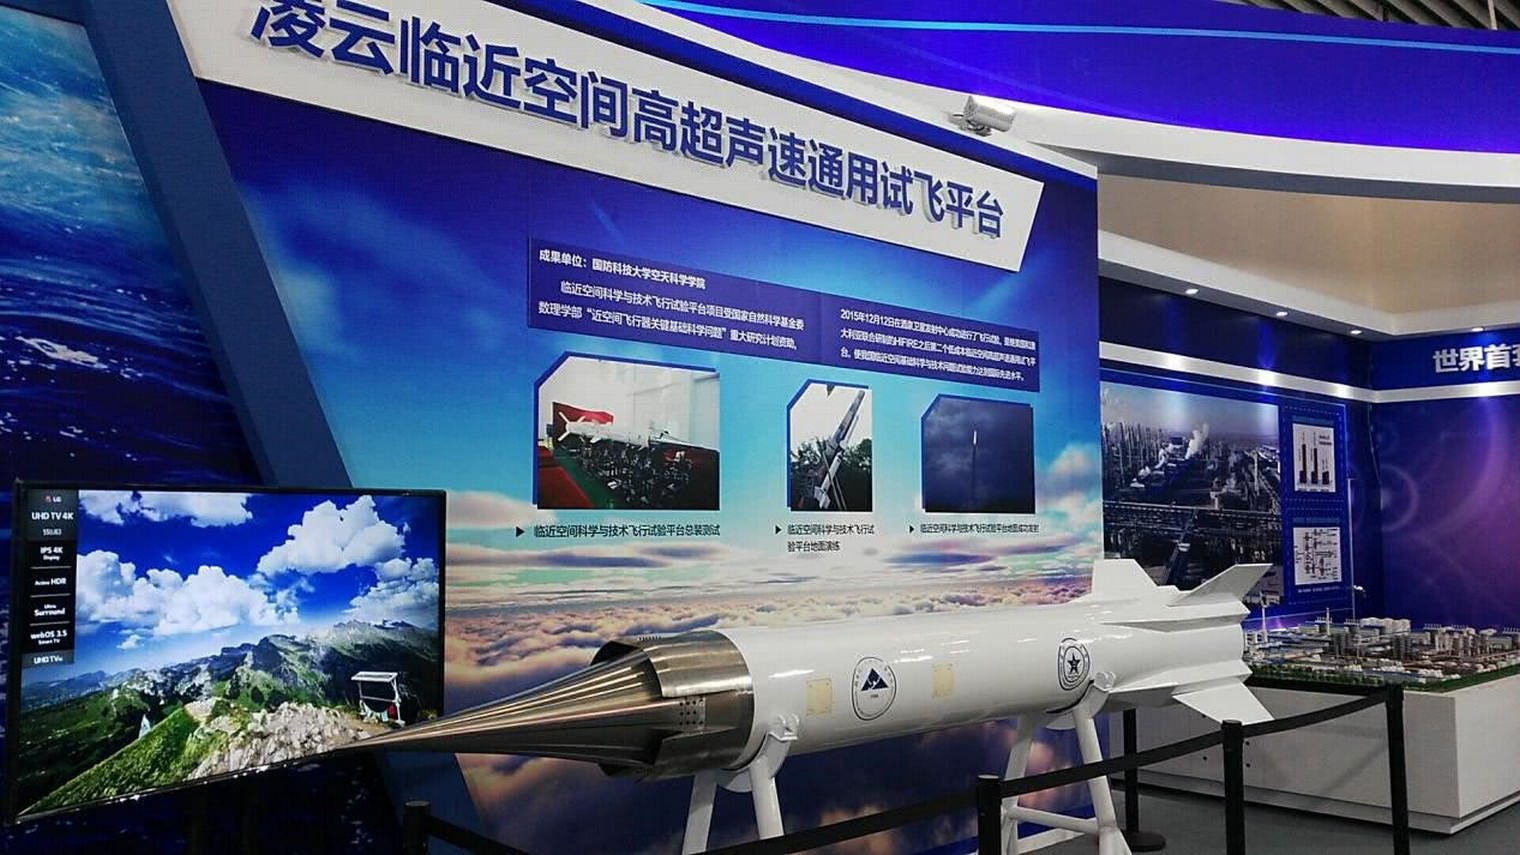 China's hypersonic military projects include spaceplanes and rail guns